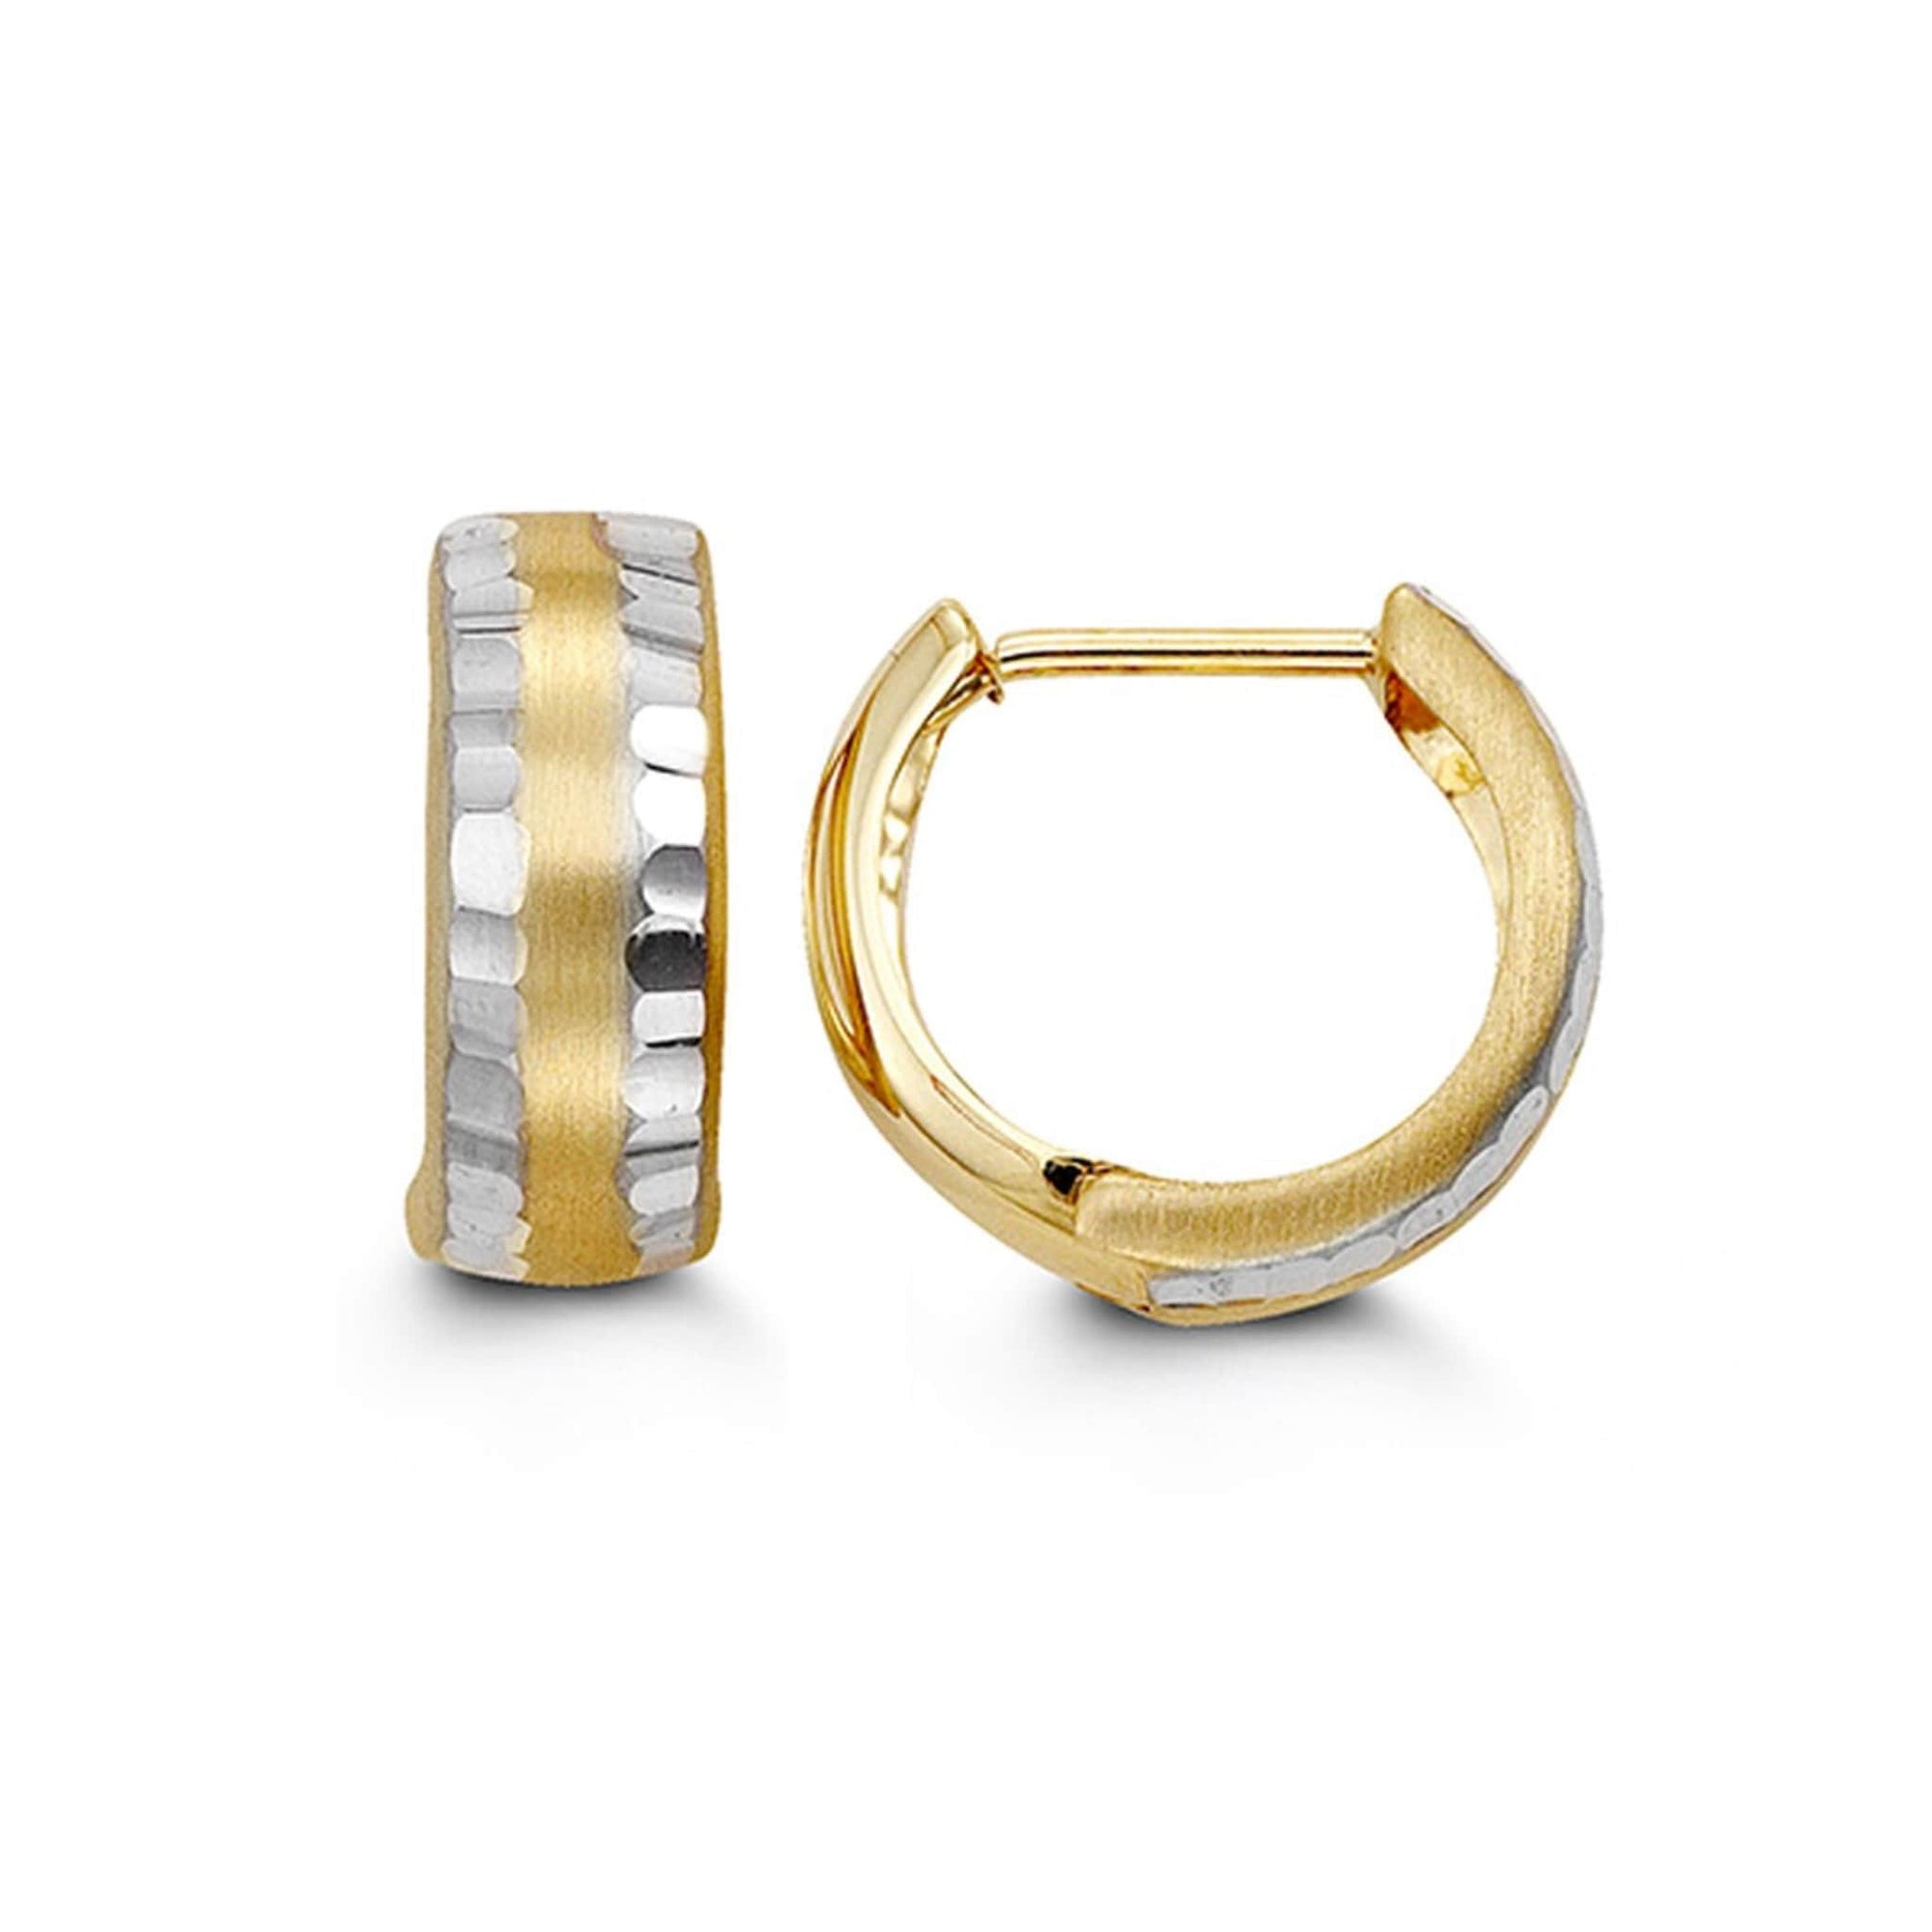 10K Two-Tone Huggie Hoop Earrings at Arman's Jewellers